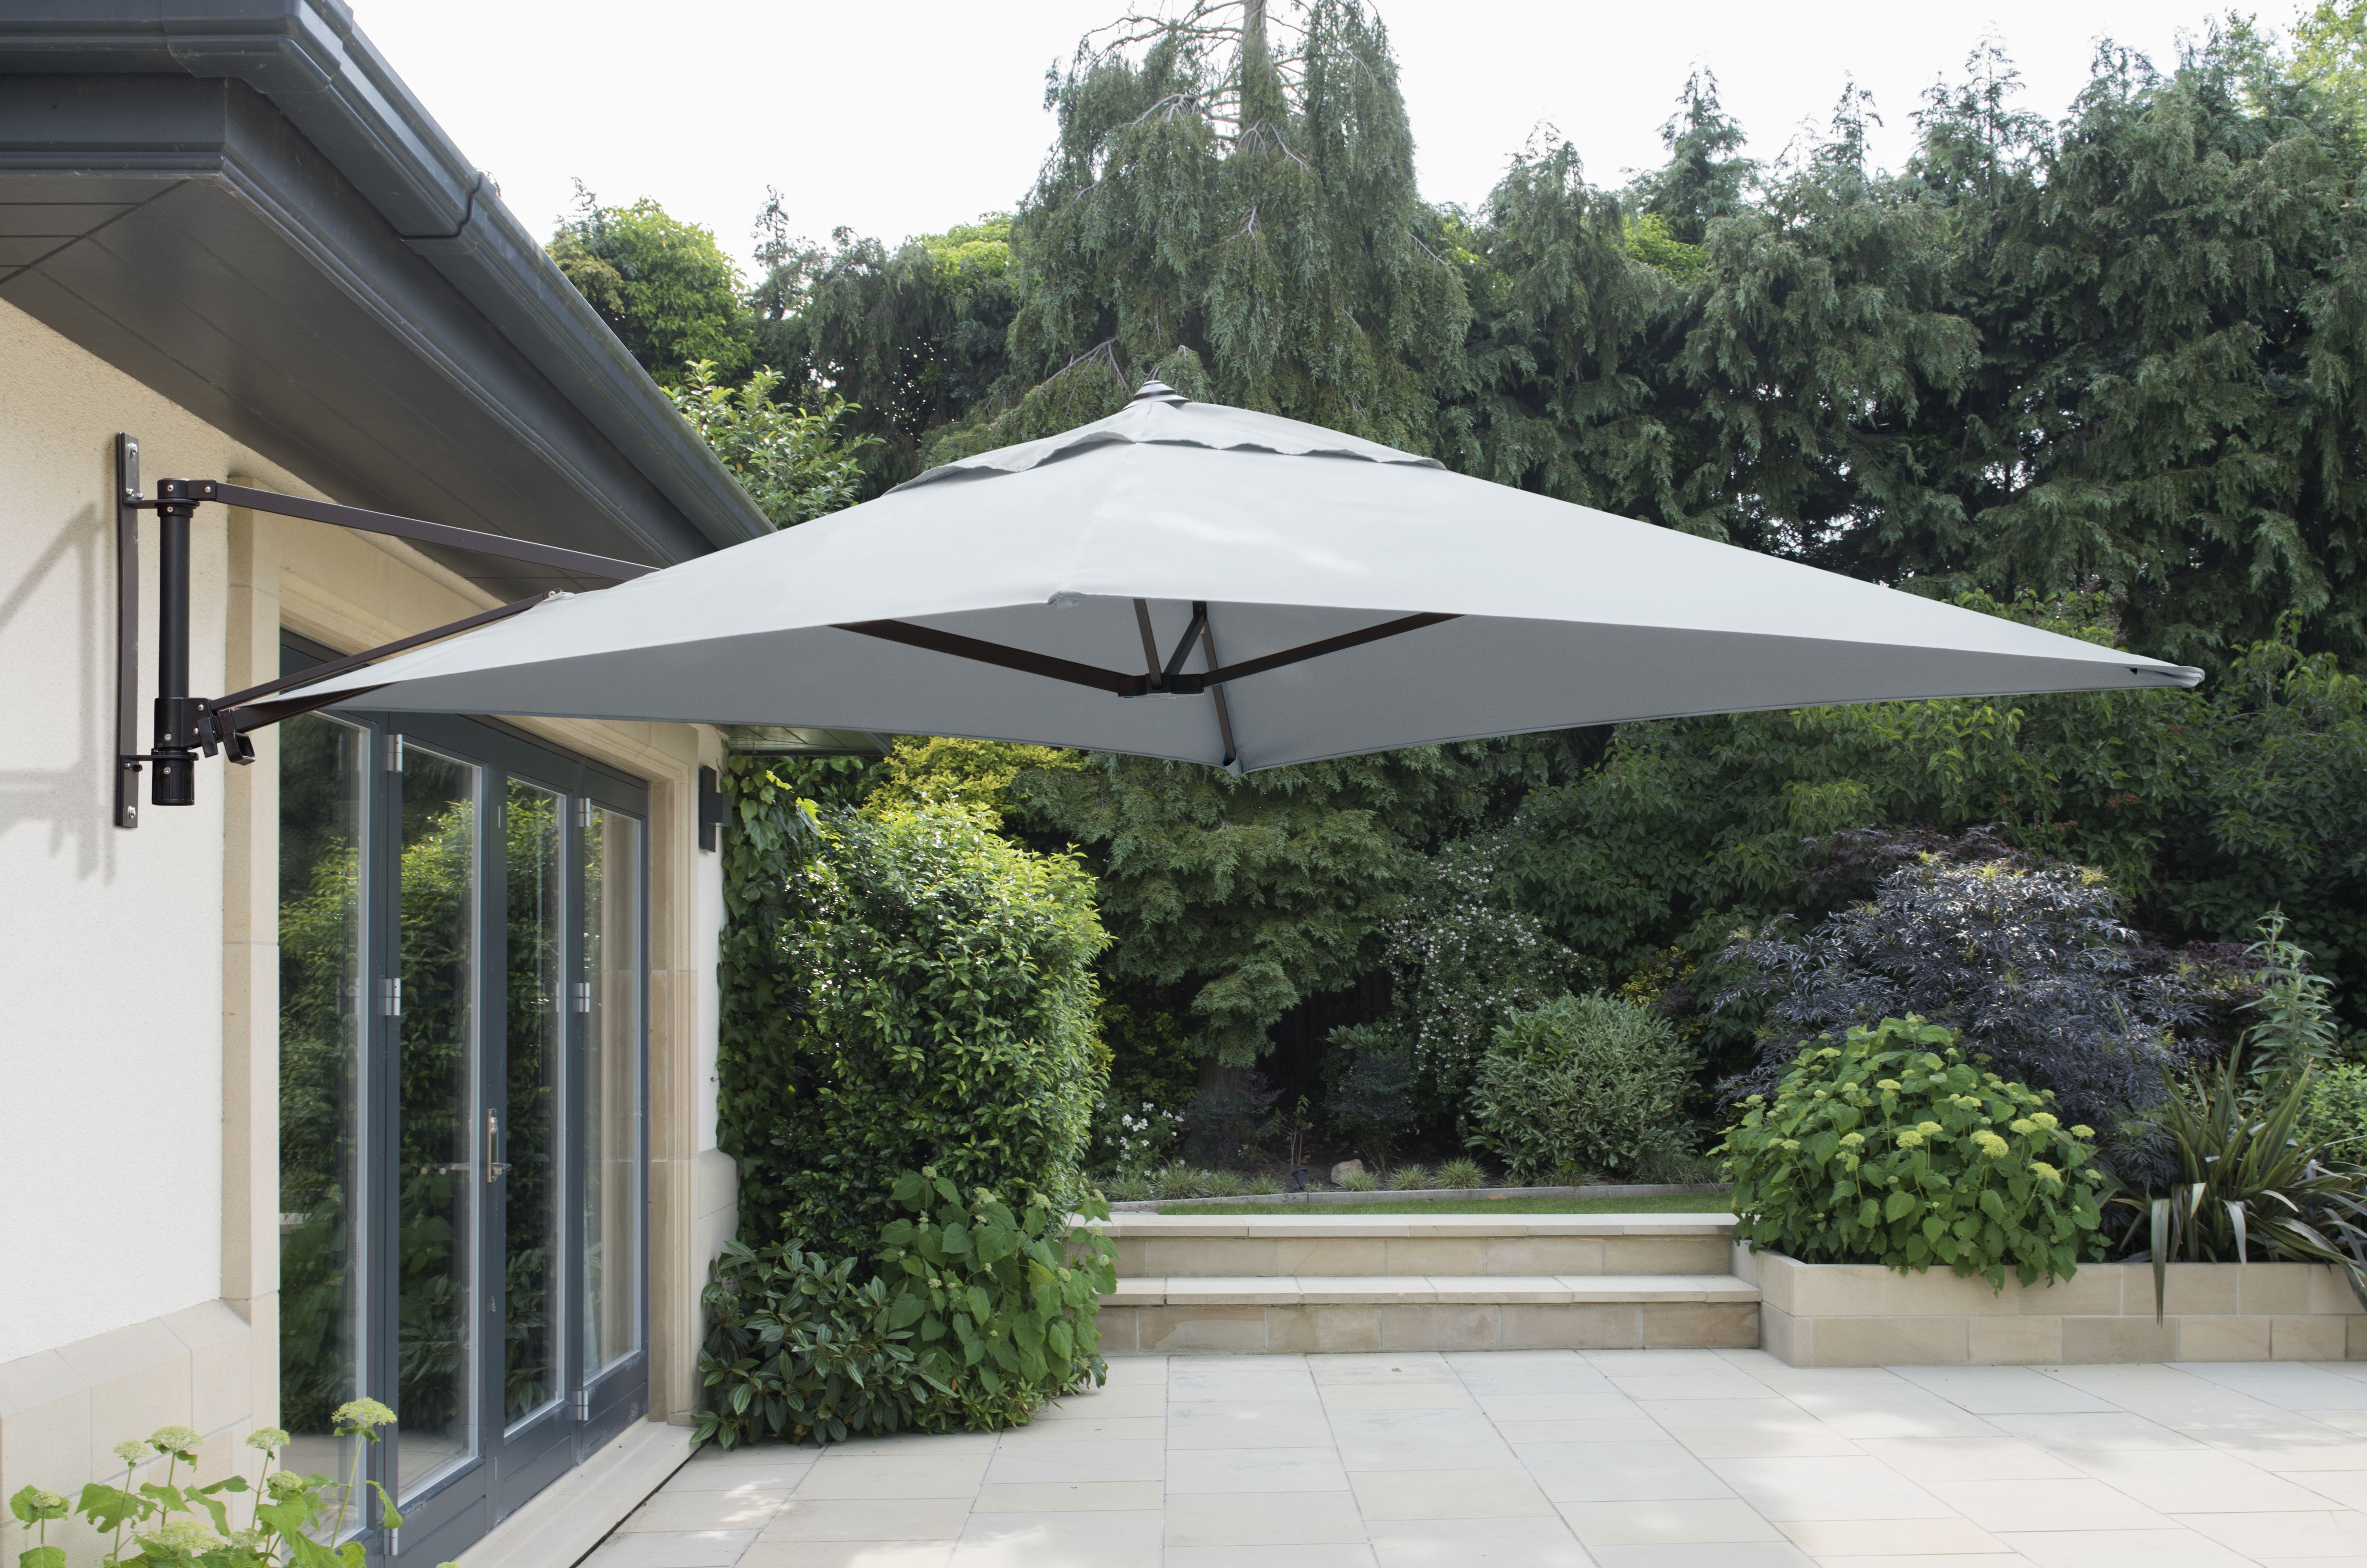 Wall Mounted 2 0m Square Cantilever Garden Parasol Patio Life Cantilever Parasol Garden Parasols Patio